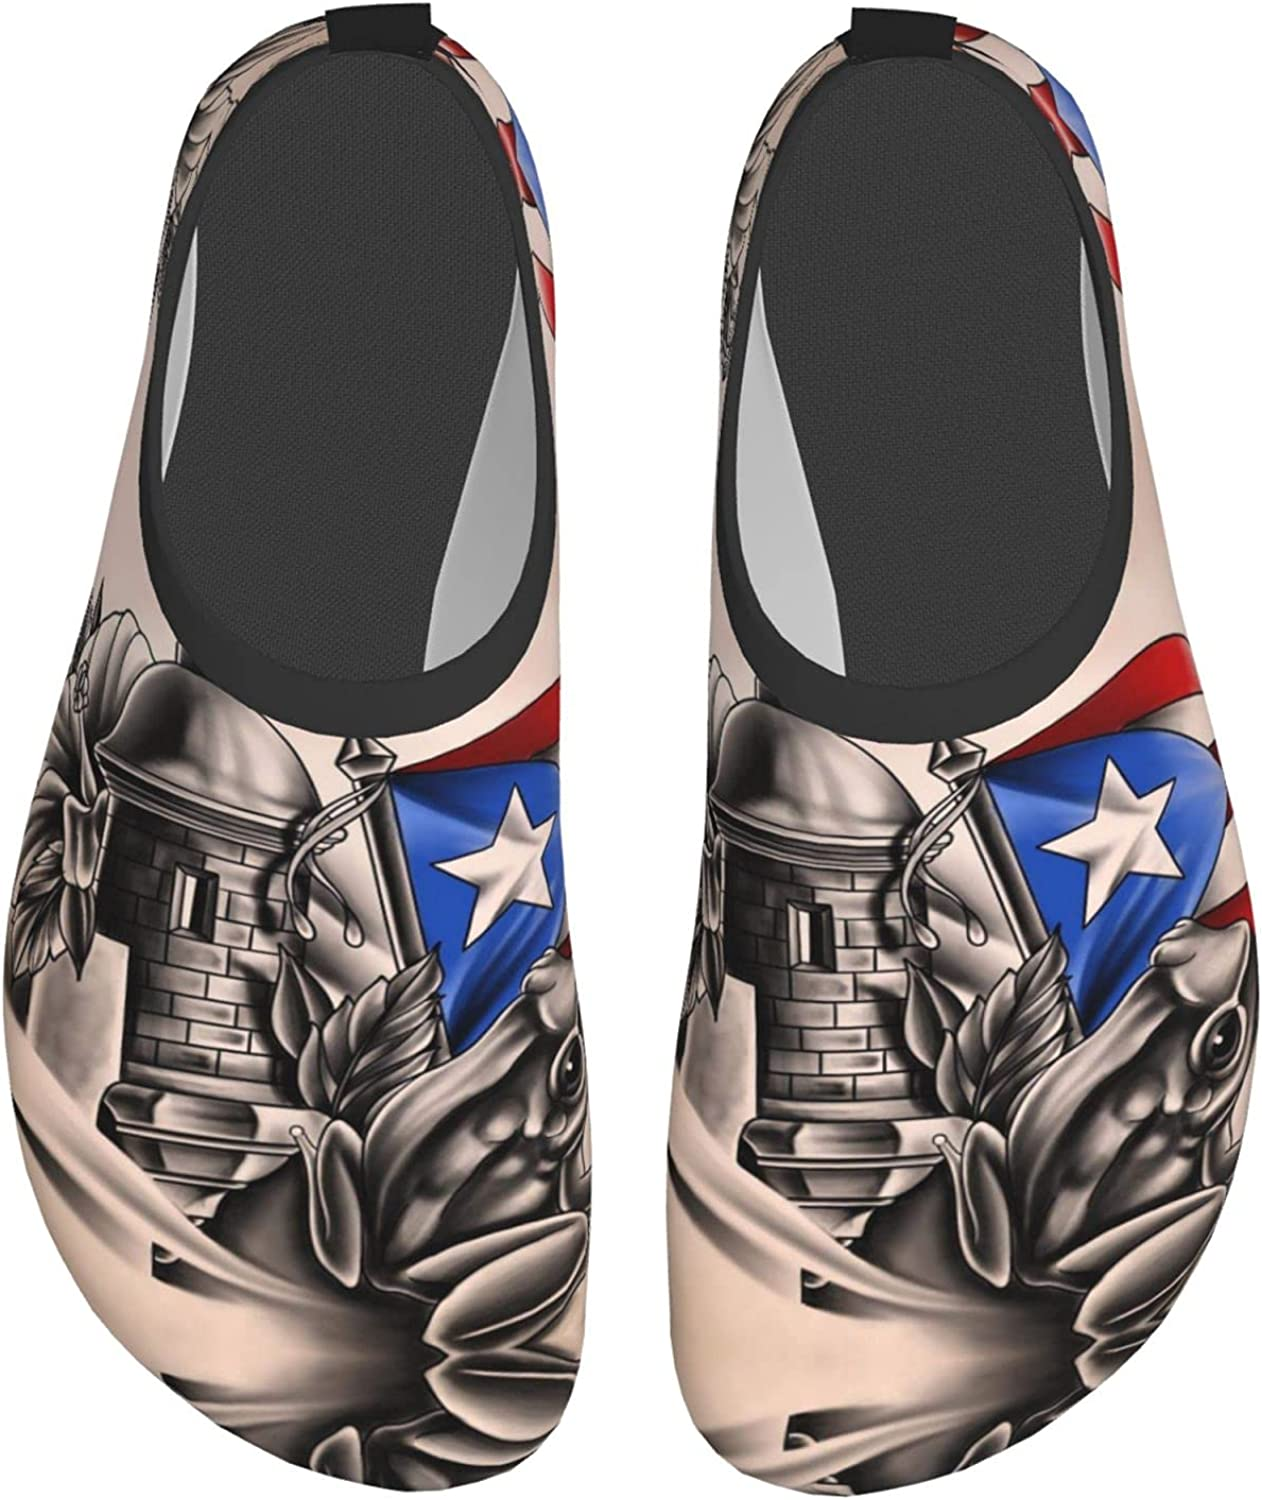 Puerto Rico Rican Flag Frog Mens and Womens Water Shoes Barefoot Quick-Dry Aqua Yoga Socks Slip-On for Beach Sports Swim Snorkeling